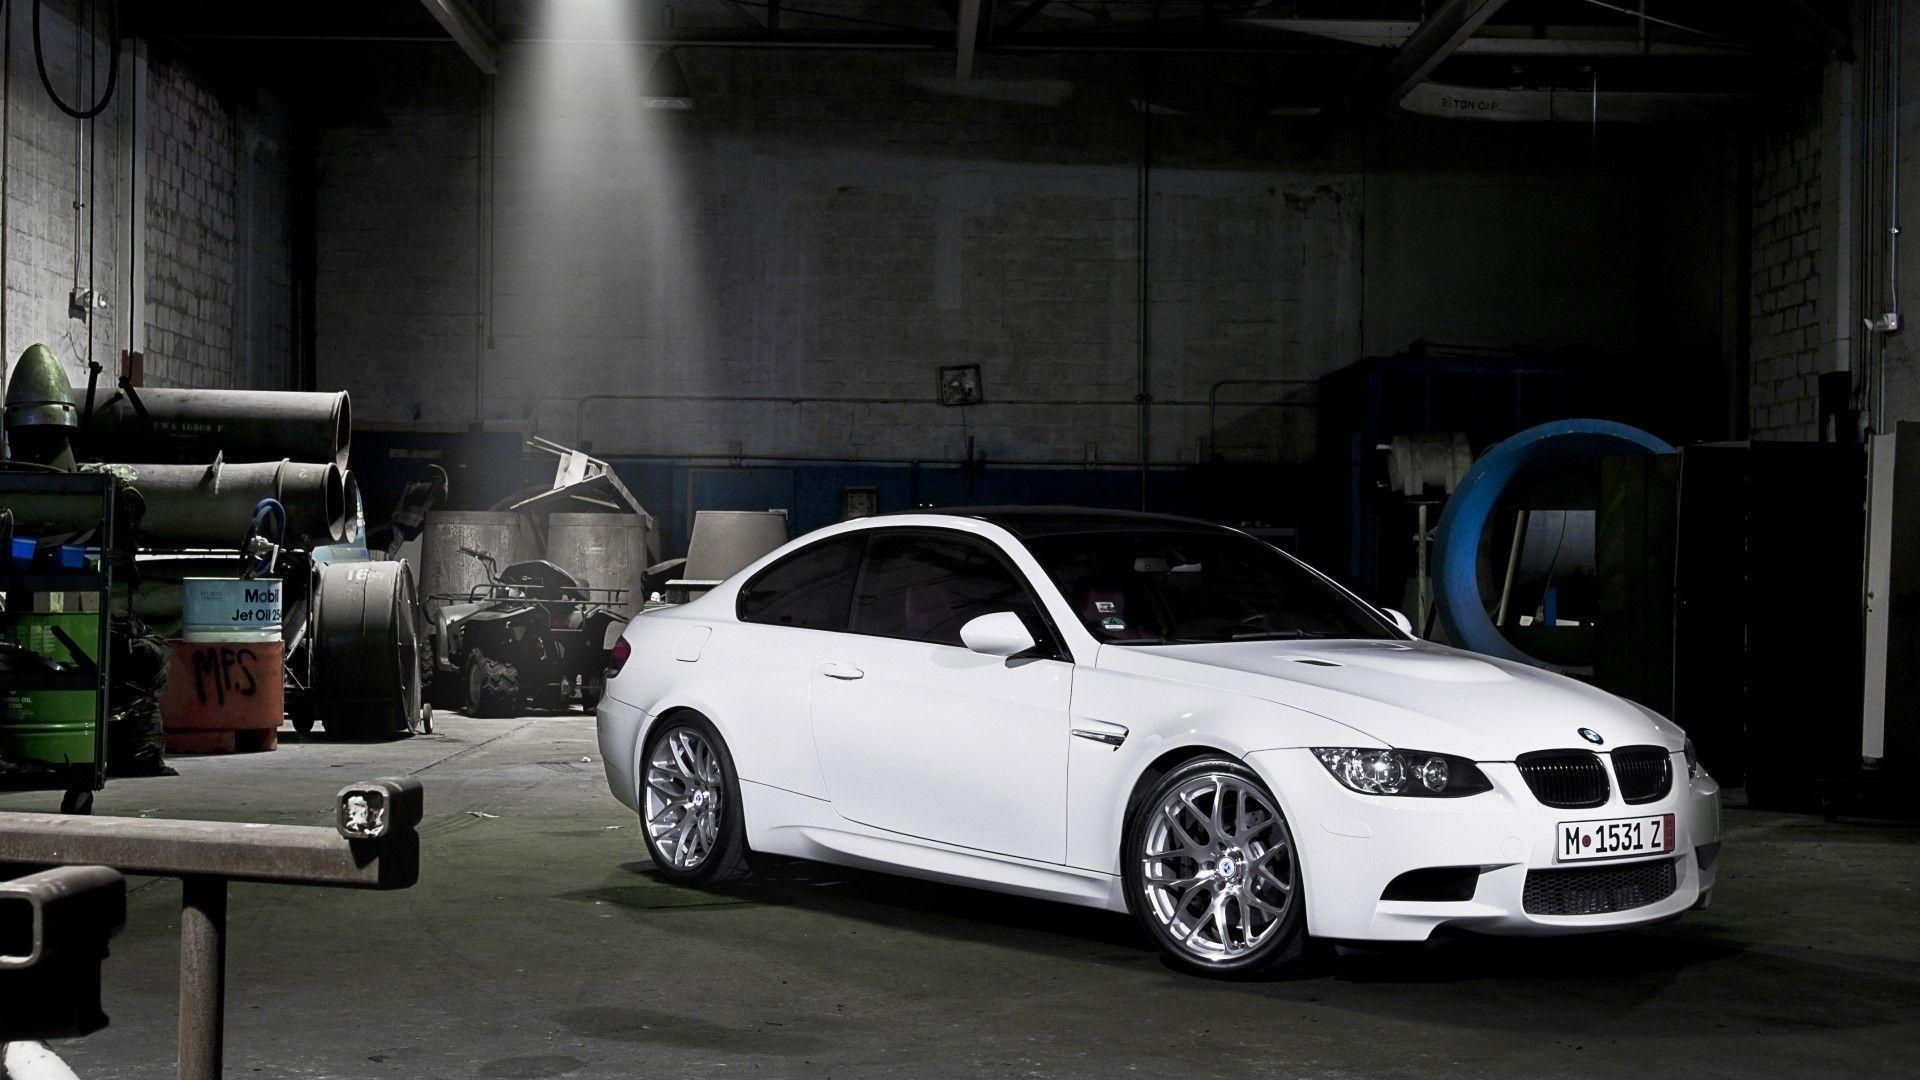 Hd Bmw M3 E92 Wheels Garage Wallpapers Car Pictures